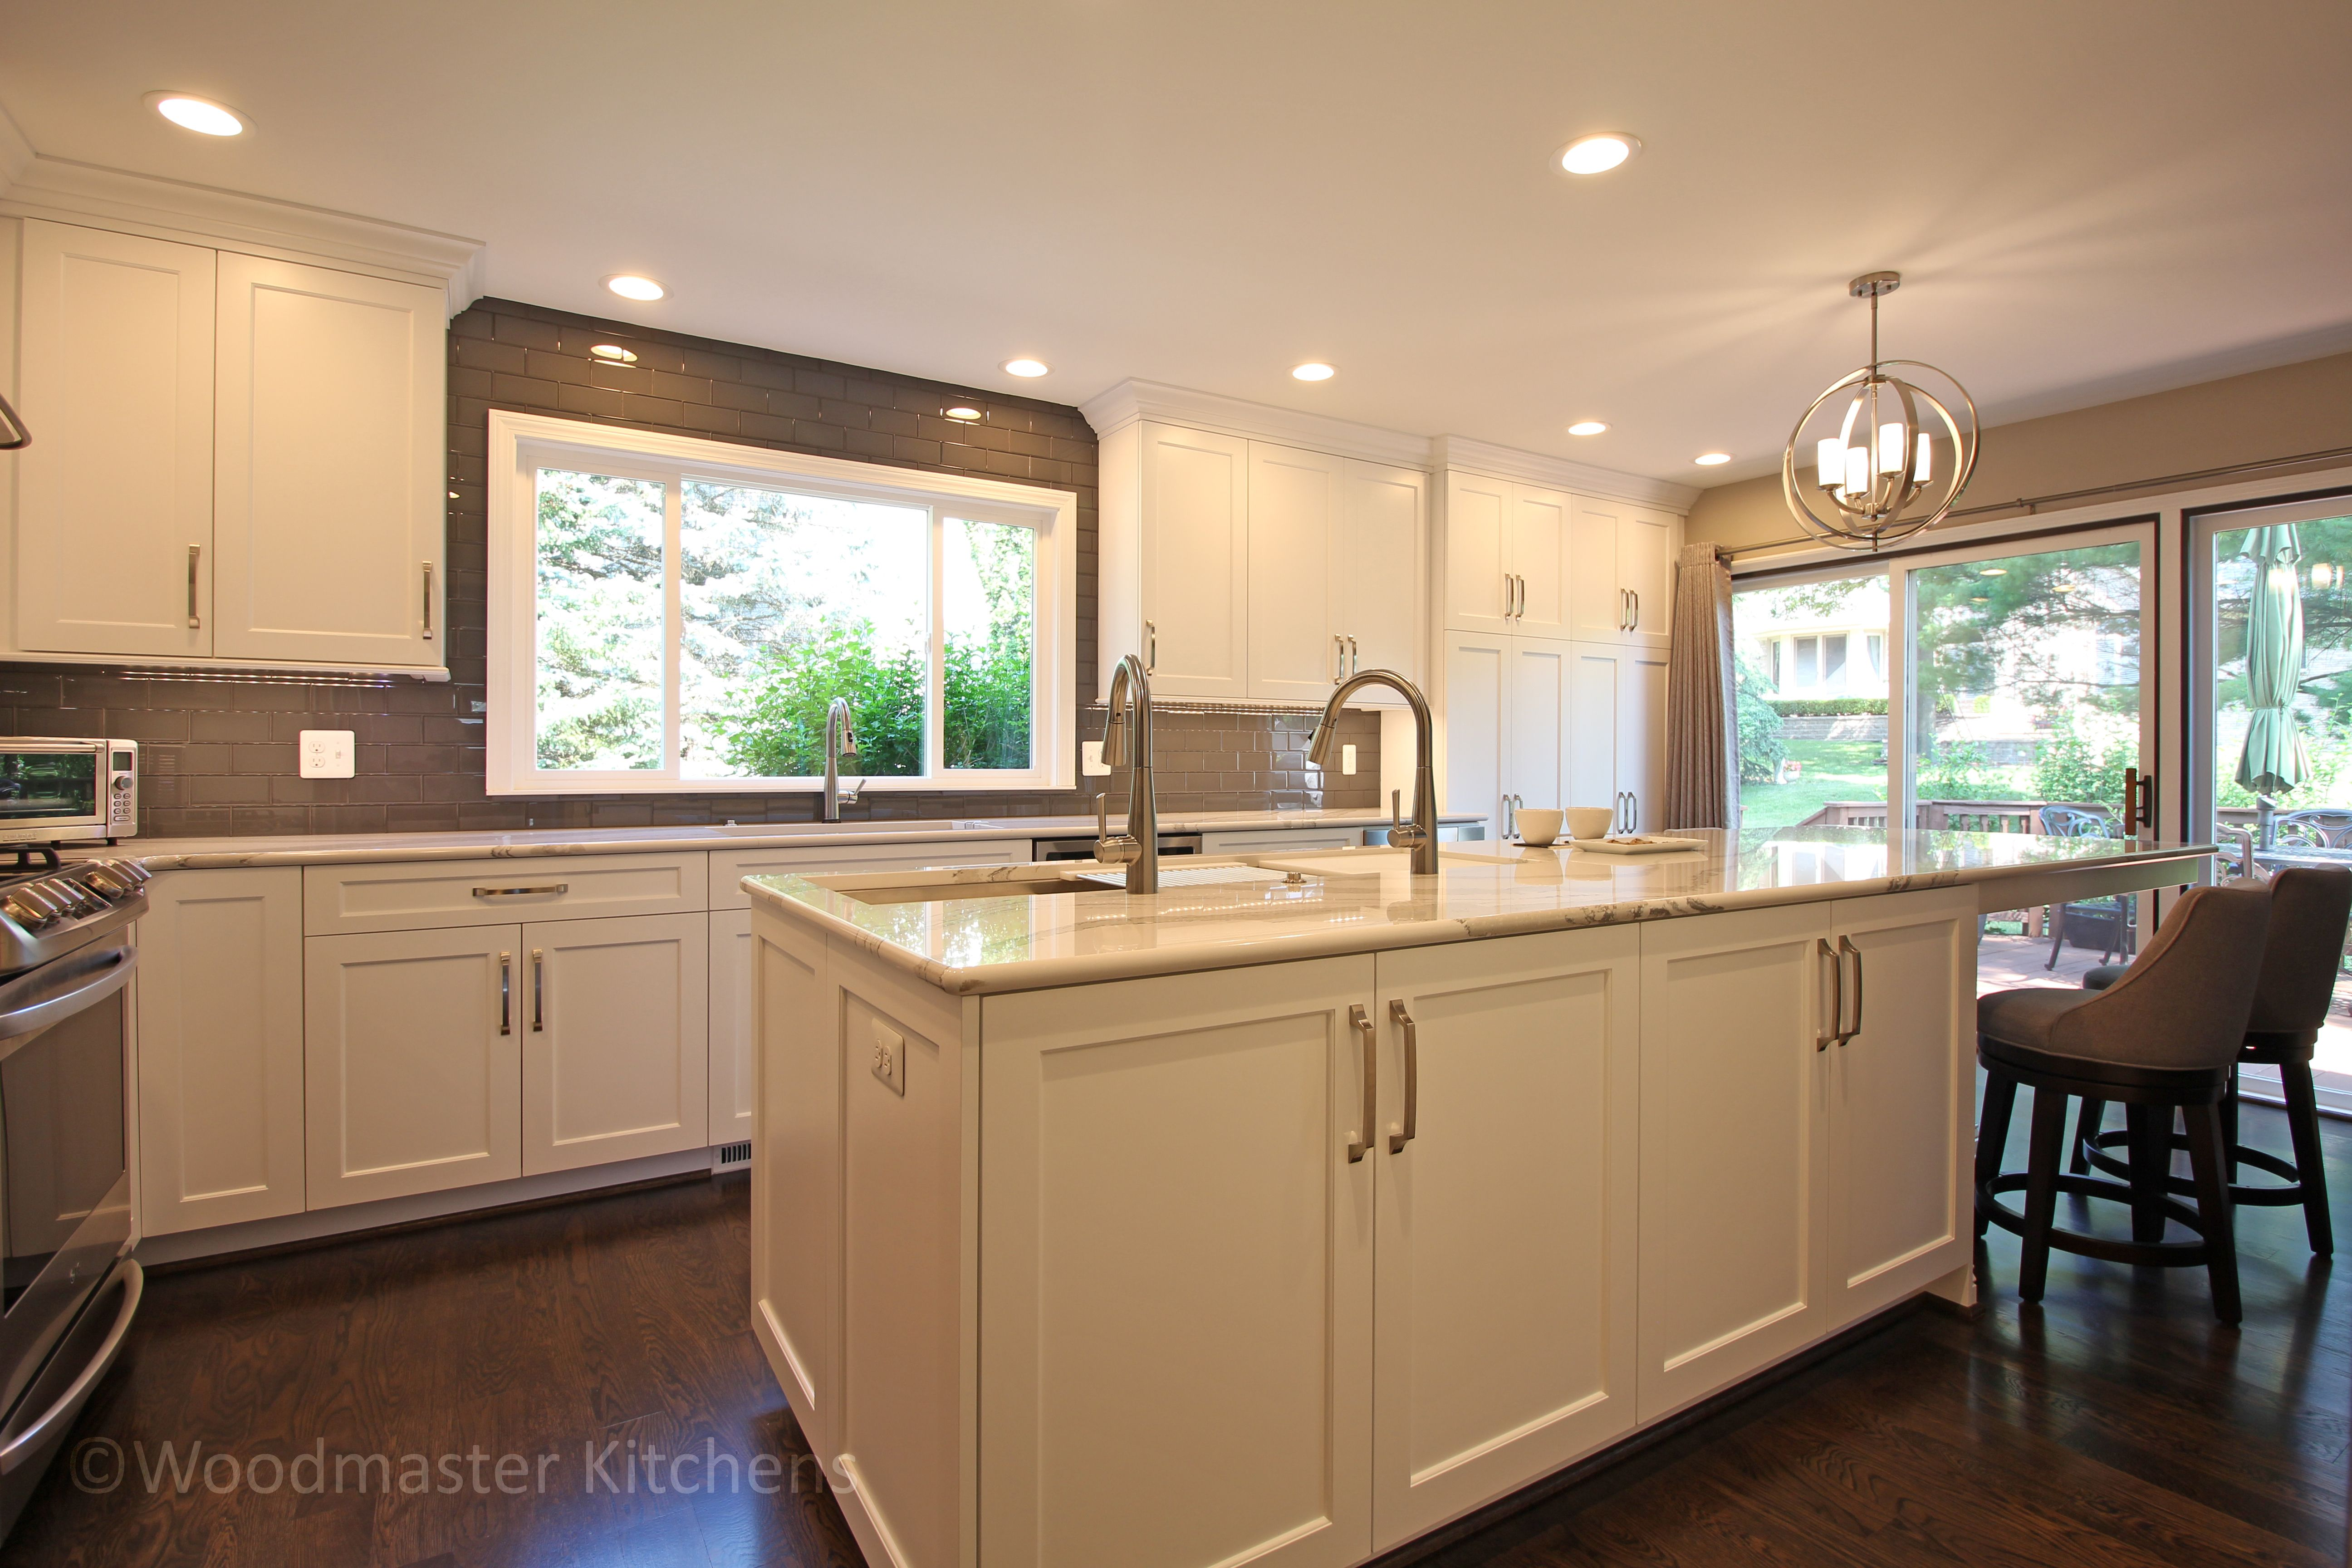 This Home Remodeling Project Included A Kitchen Remodel Plus A New Front Door And Foyer Upgrade The Kitc Modern Kitchen Design Kitchen Design Kitchen Remodel